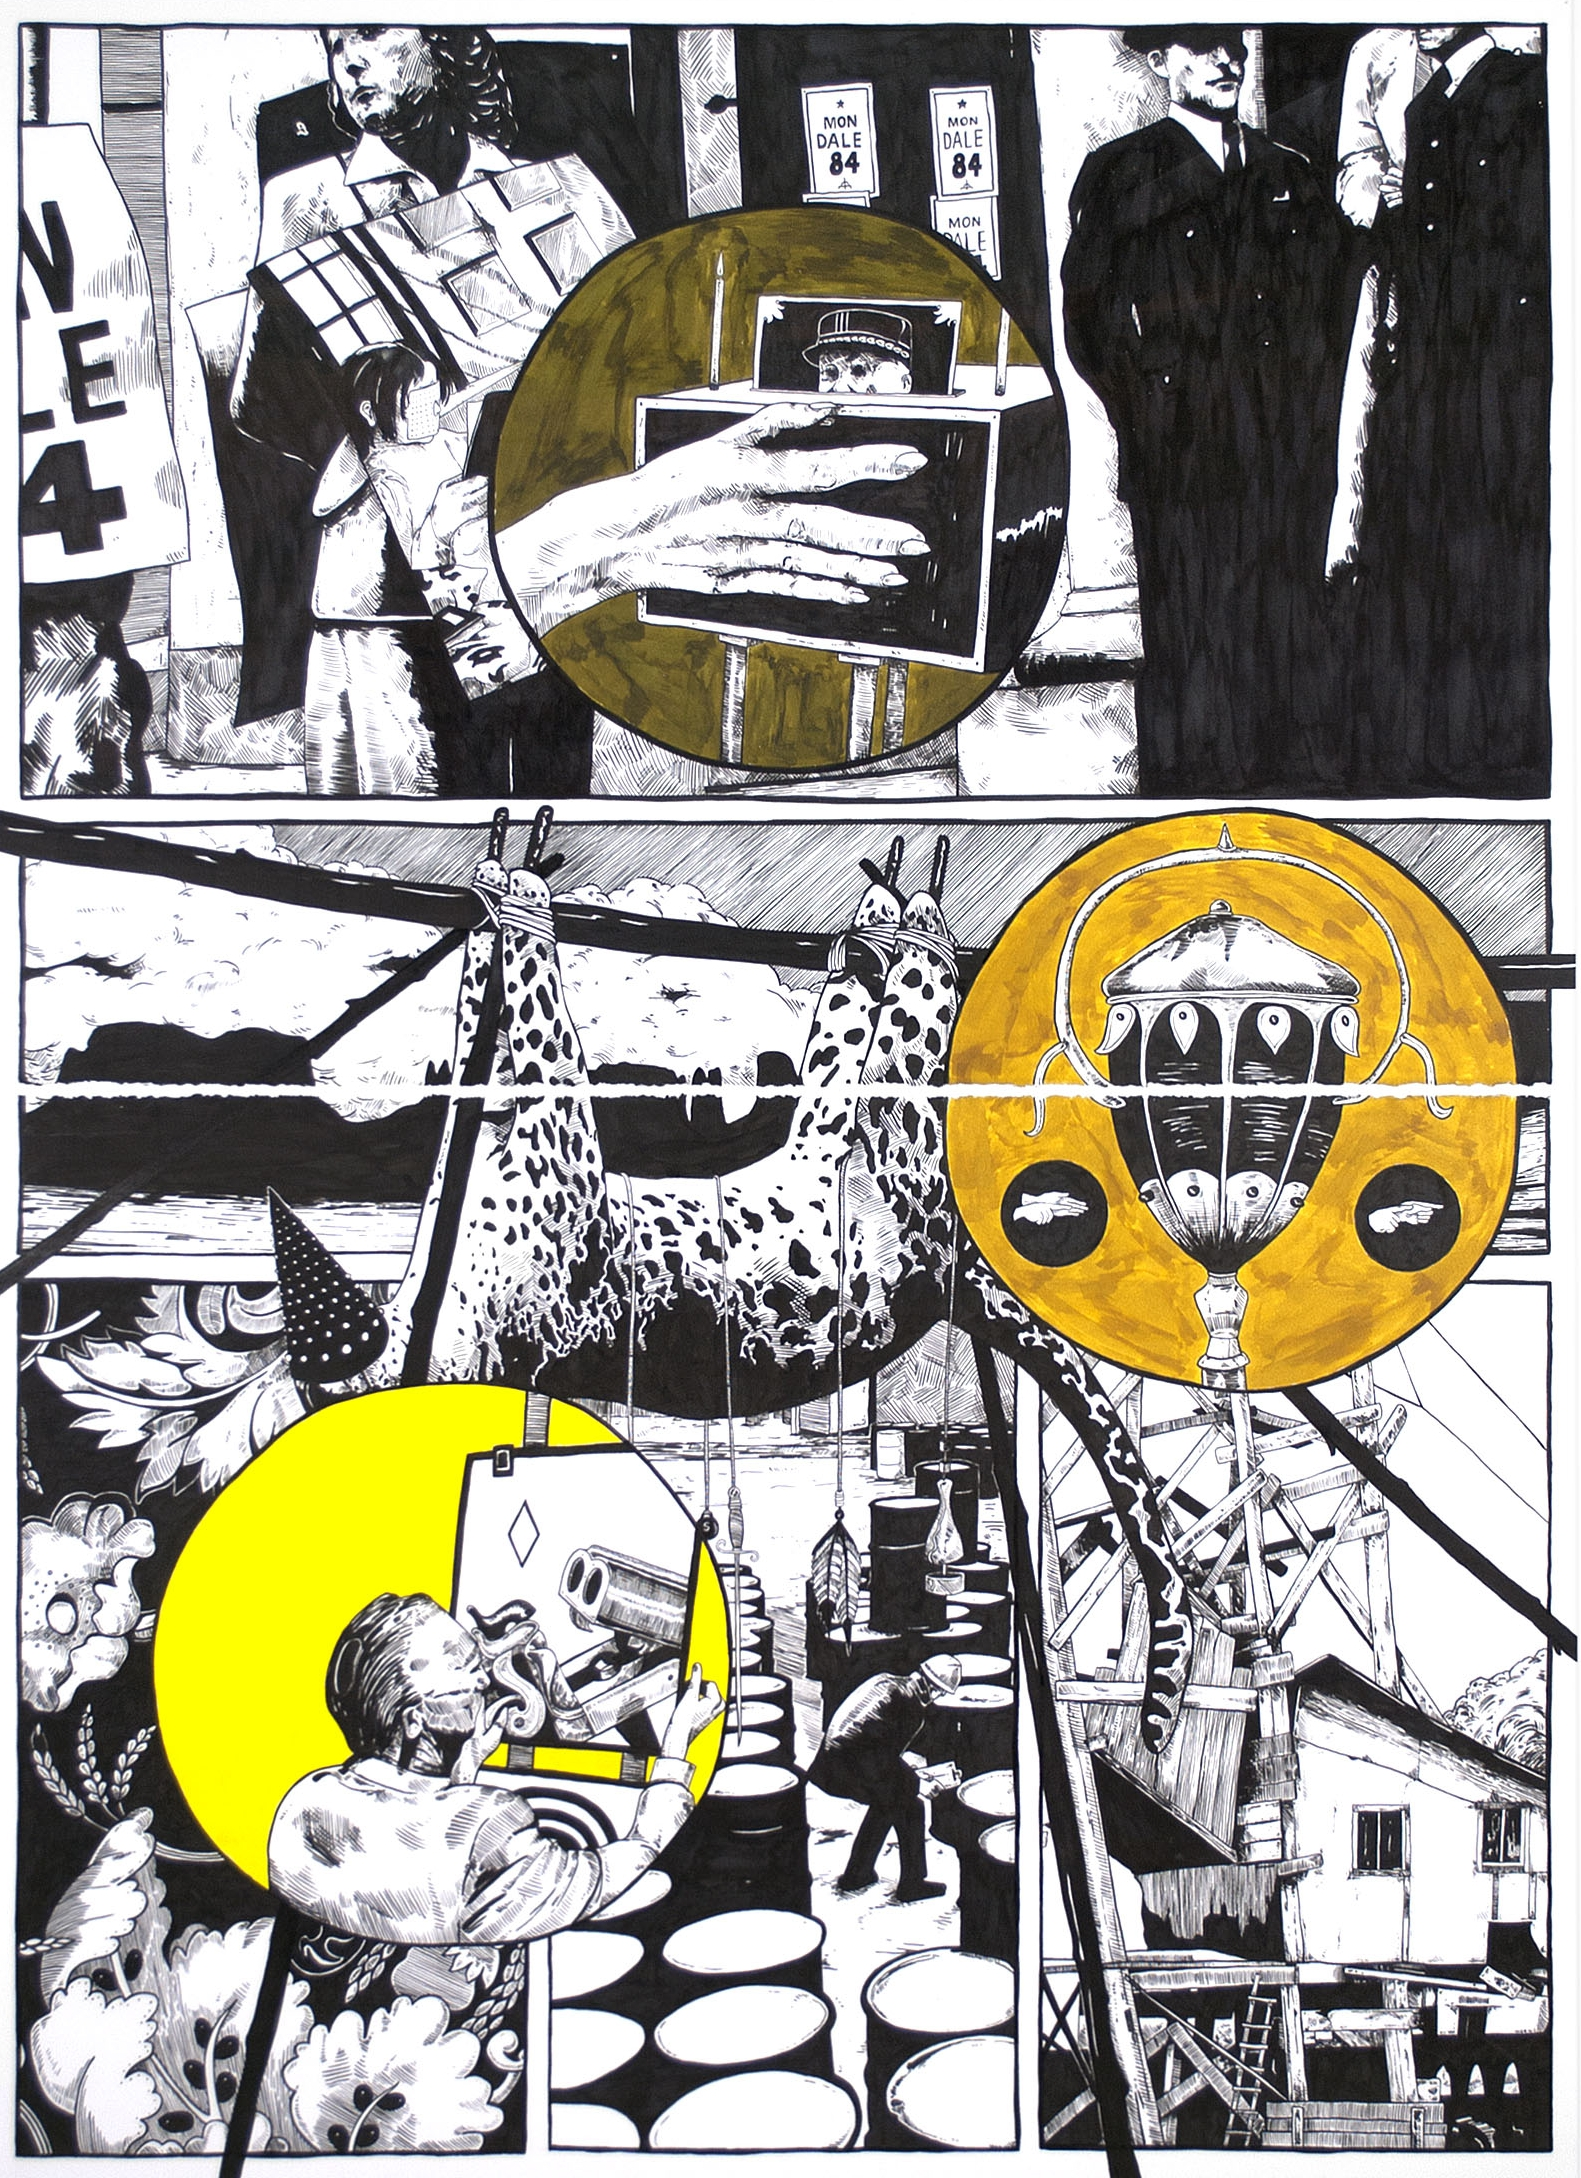 Lower Than the Lowest Animal #8 , 2014 India ink on paper 60 x 44 inches (diptych)